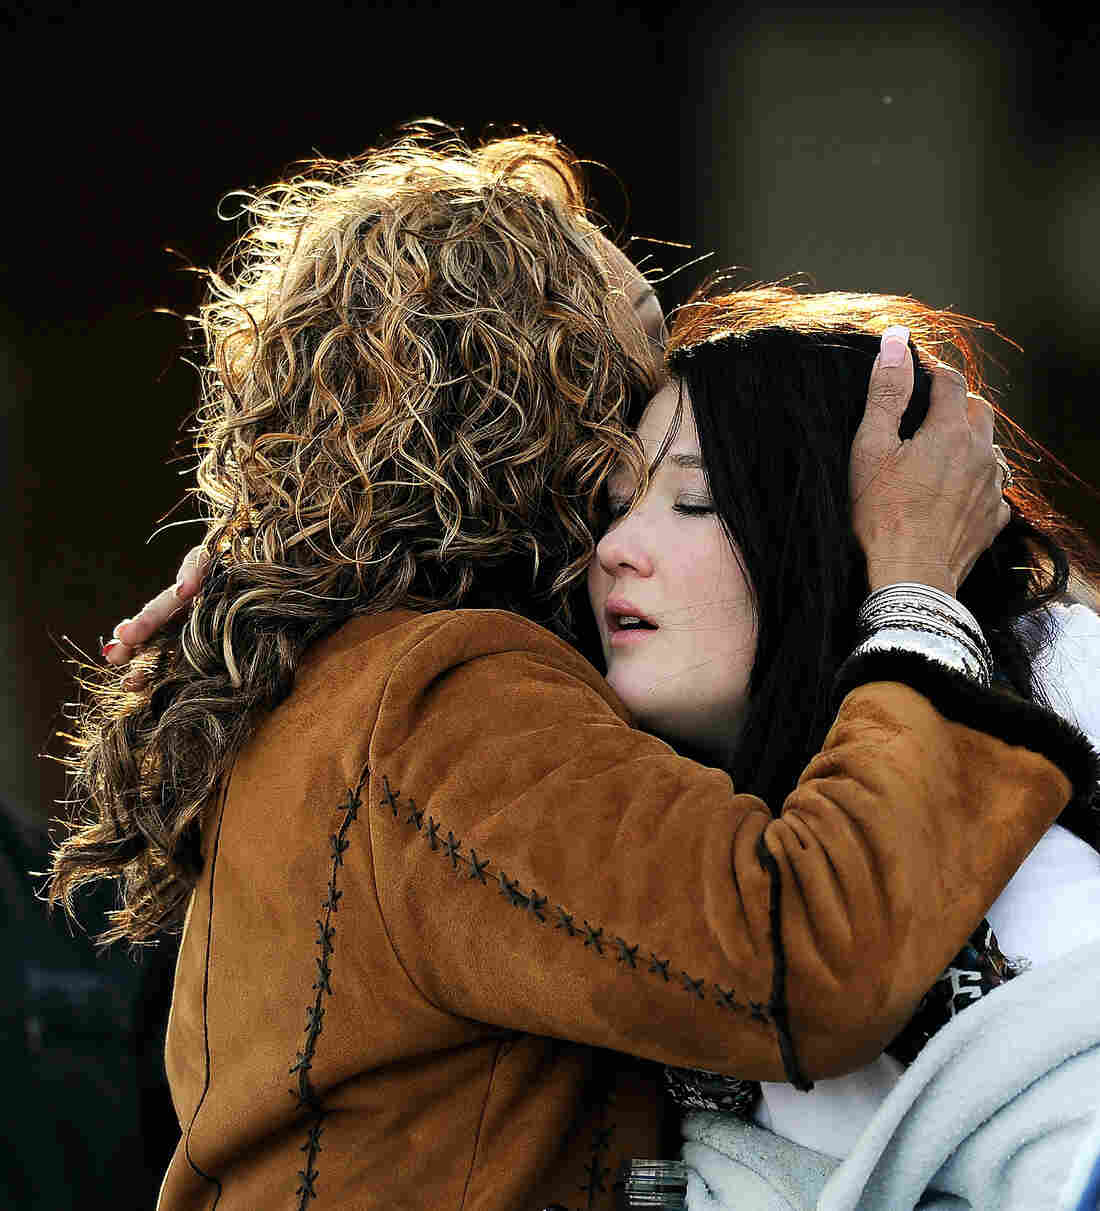 A woman hugs a student at Shepherd of the Hills Church near Arapahoe High School after a school shooting on Friday in Centennial, Colorado.